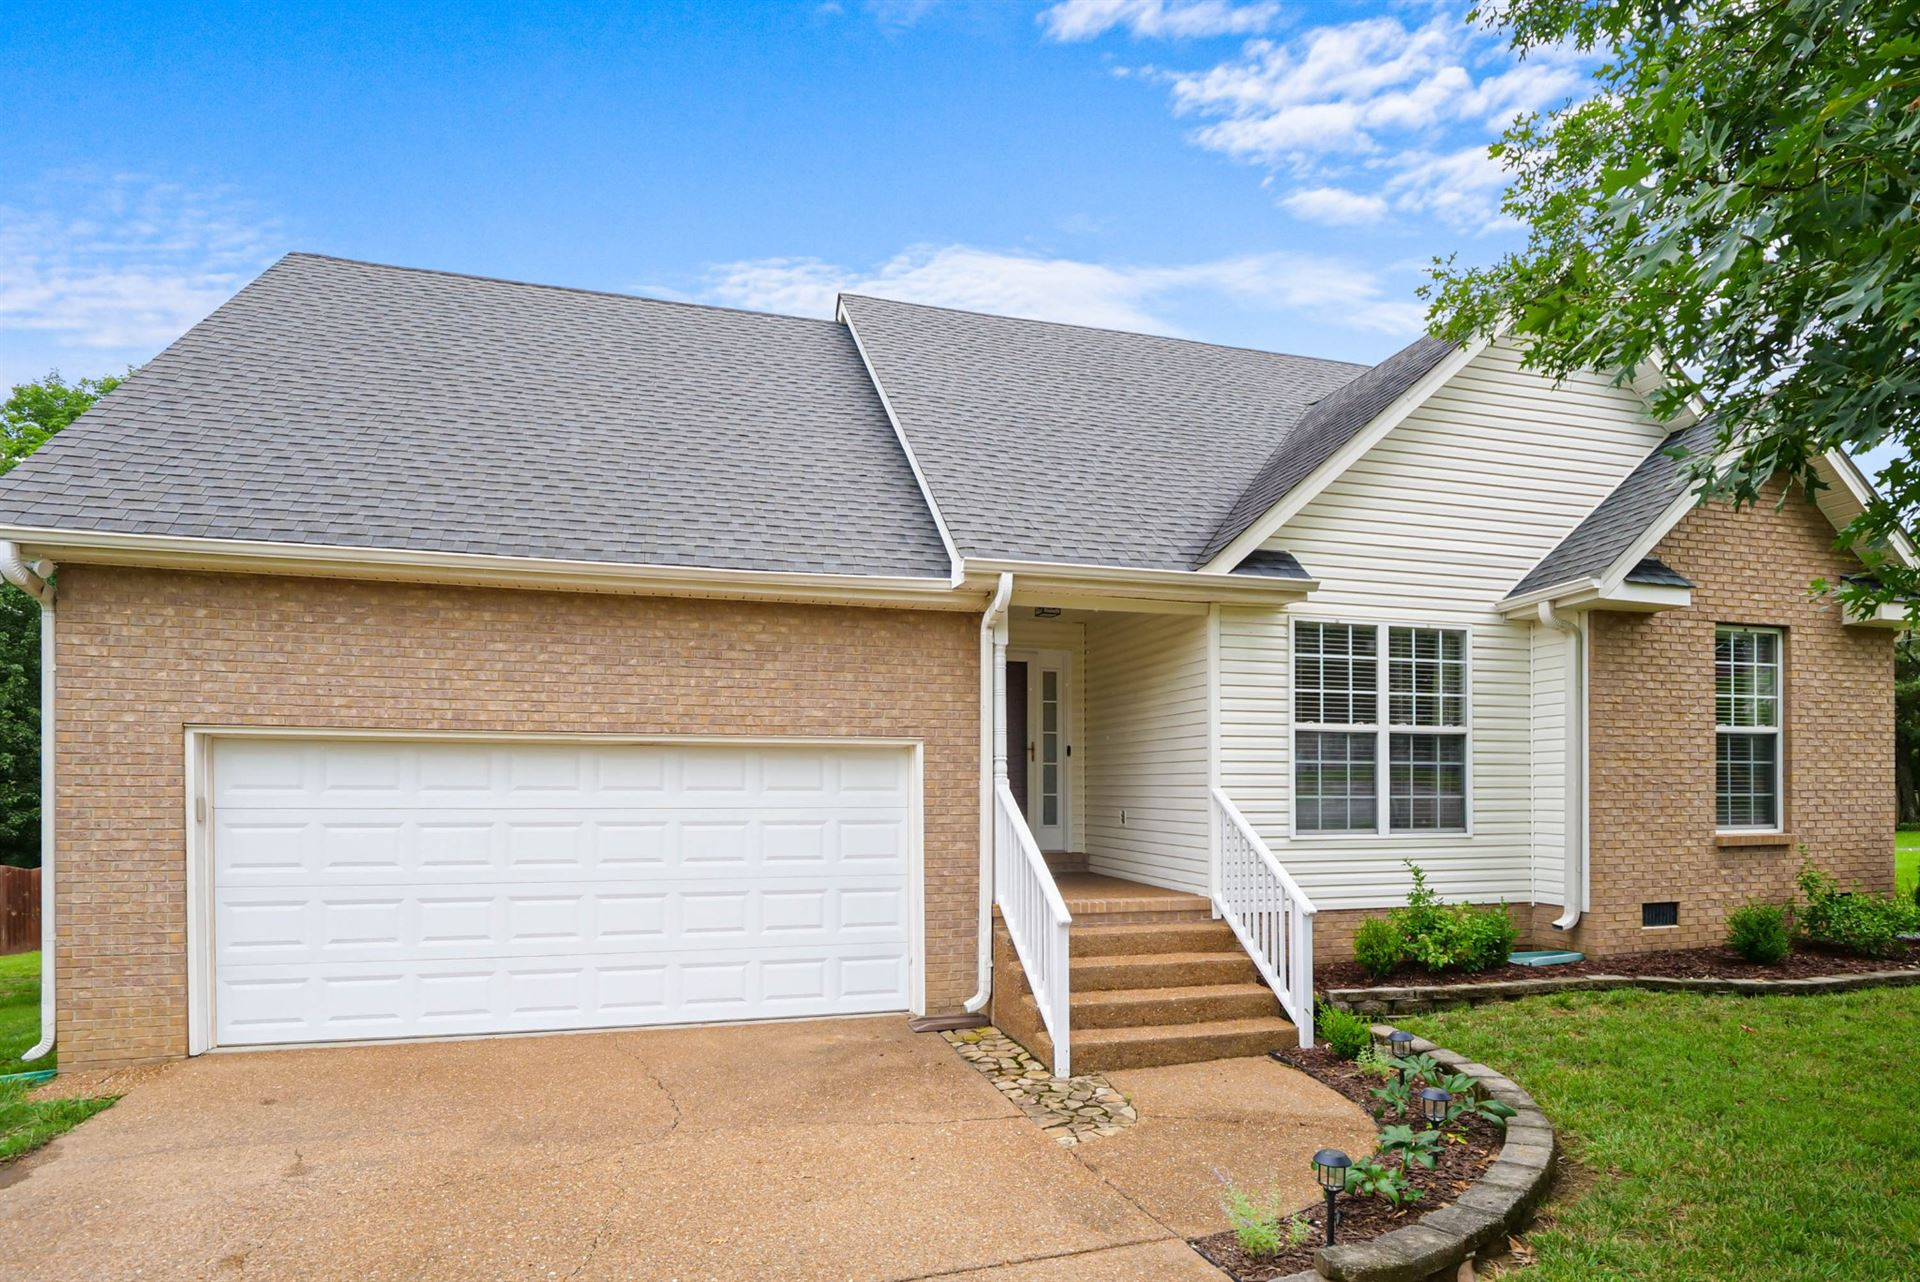 Photo of 2842 Candlewicke Dr, Spring Hill, TN 37174 (MLS # 2274287)